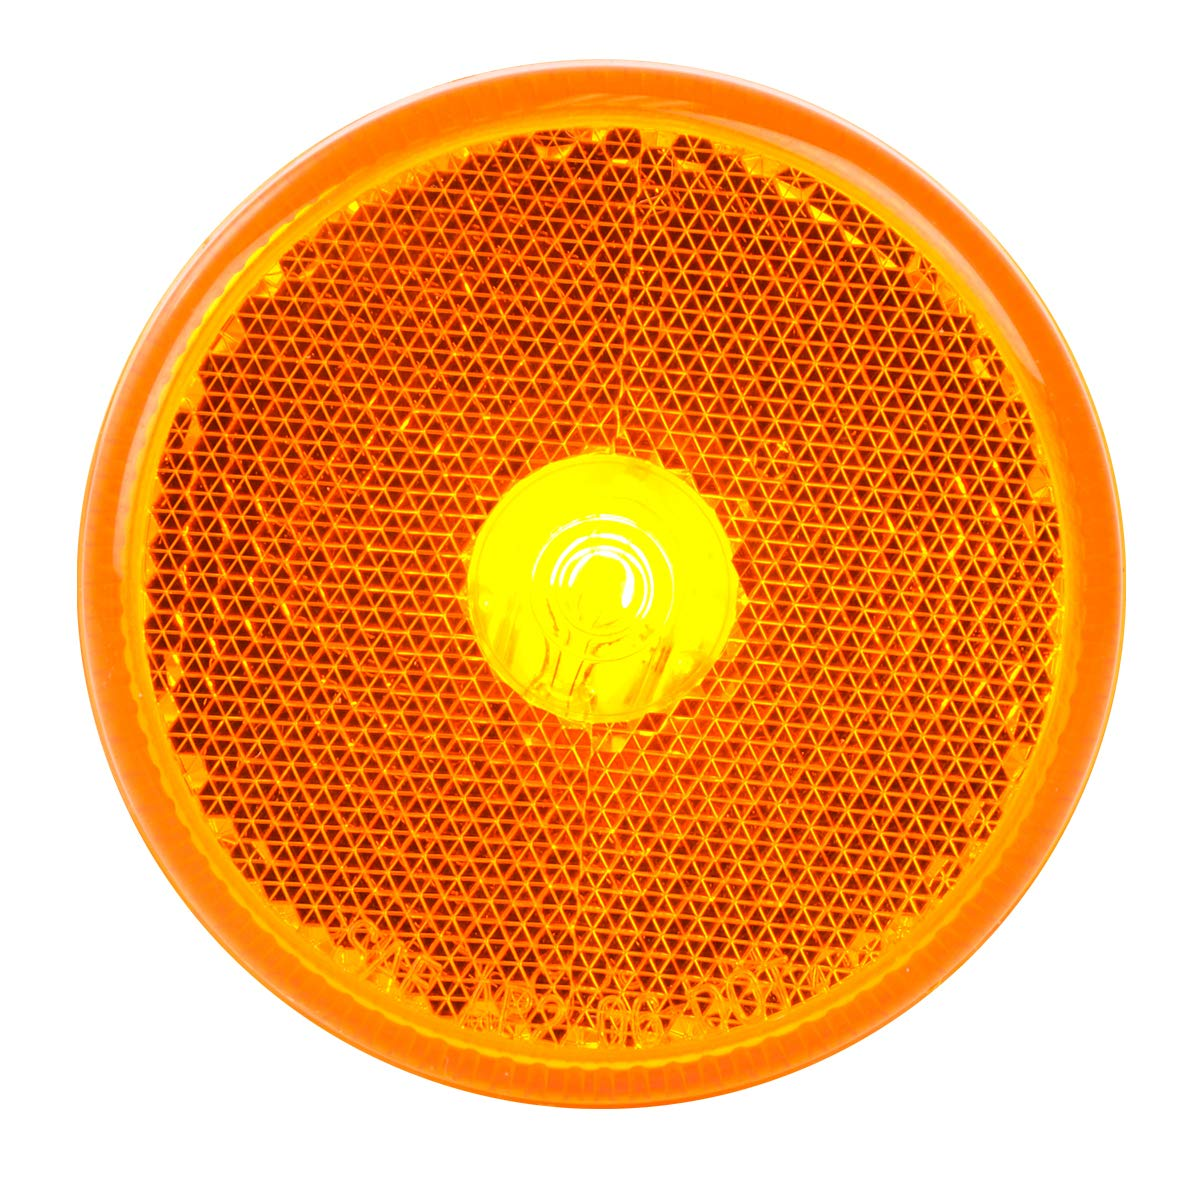 Grand General 79495 Sealed Light 2.5 Reflector Style Clear Int//Utility